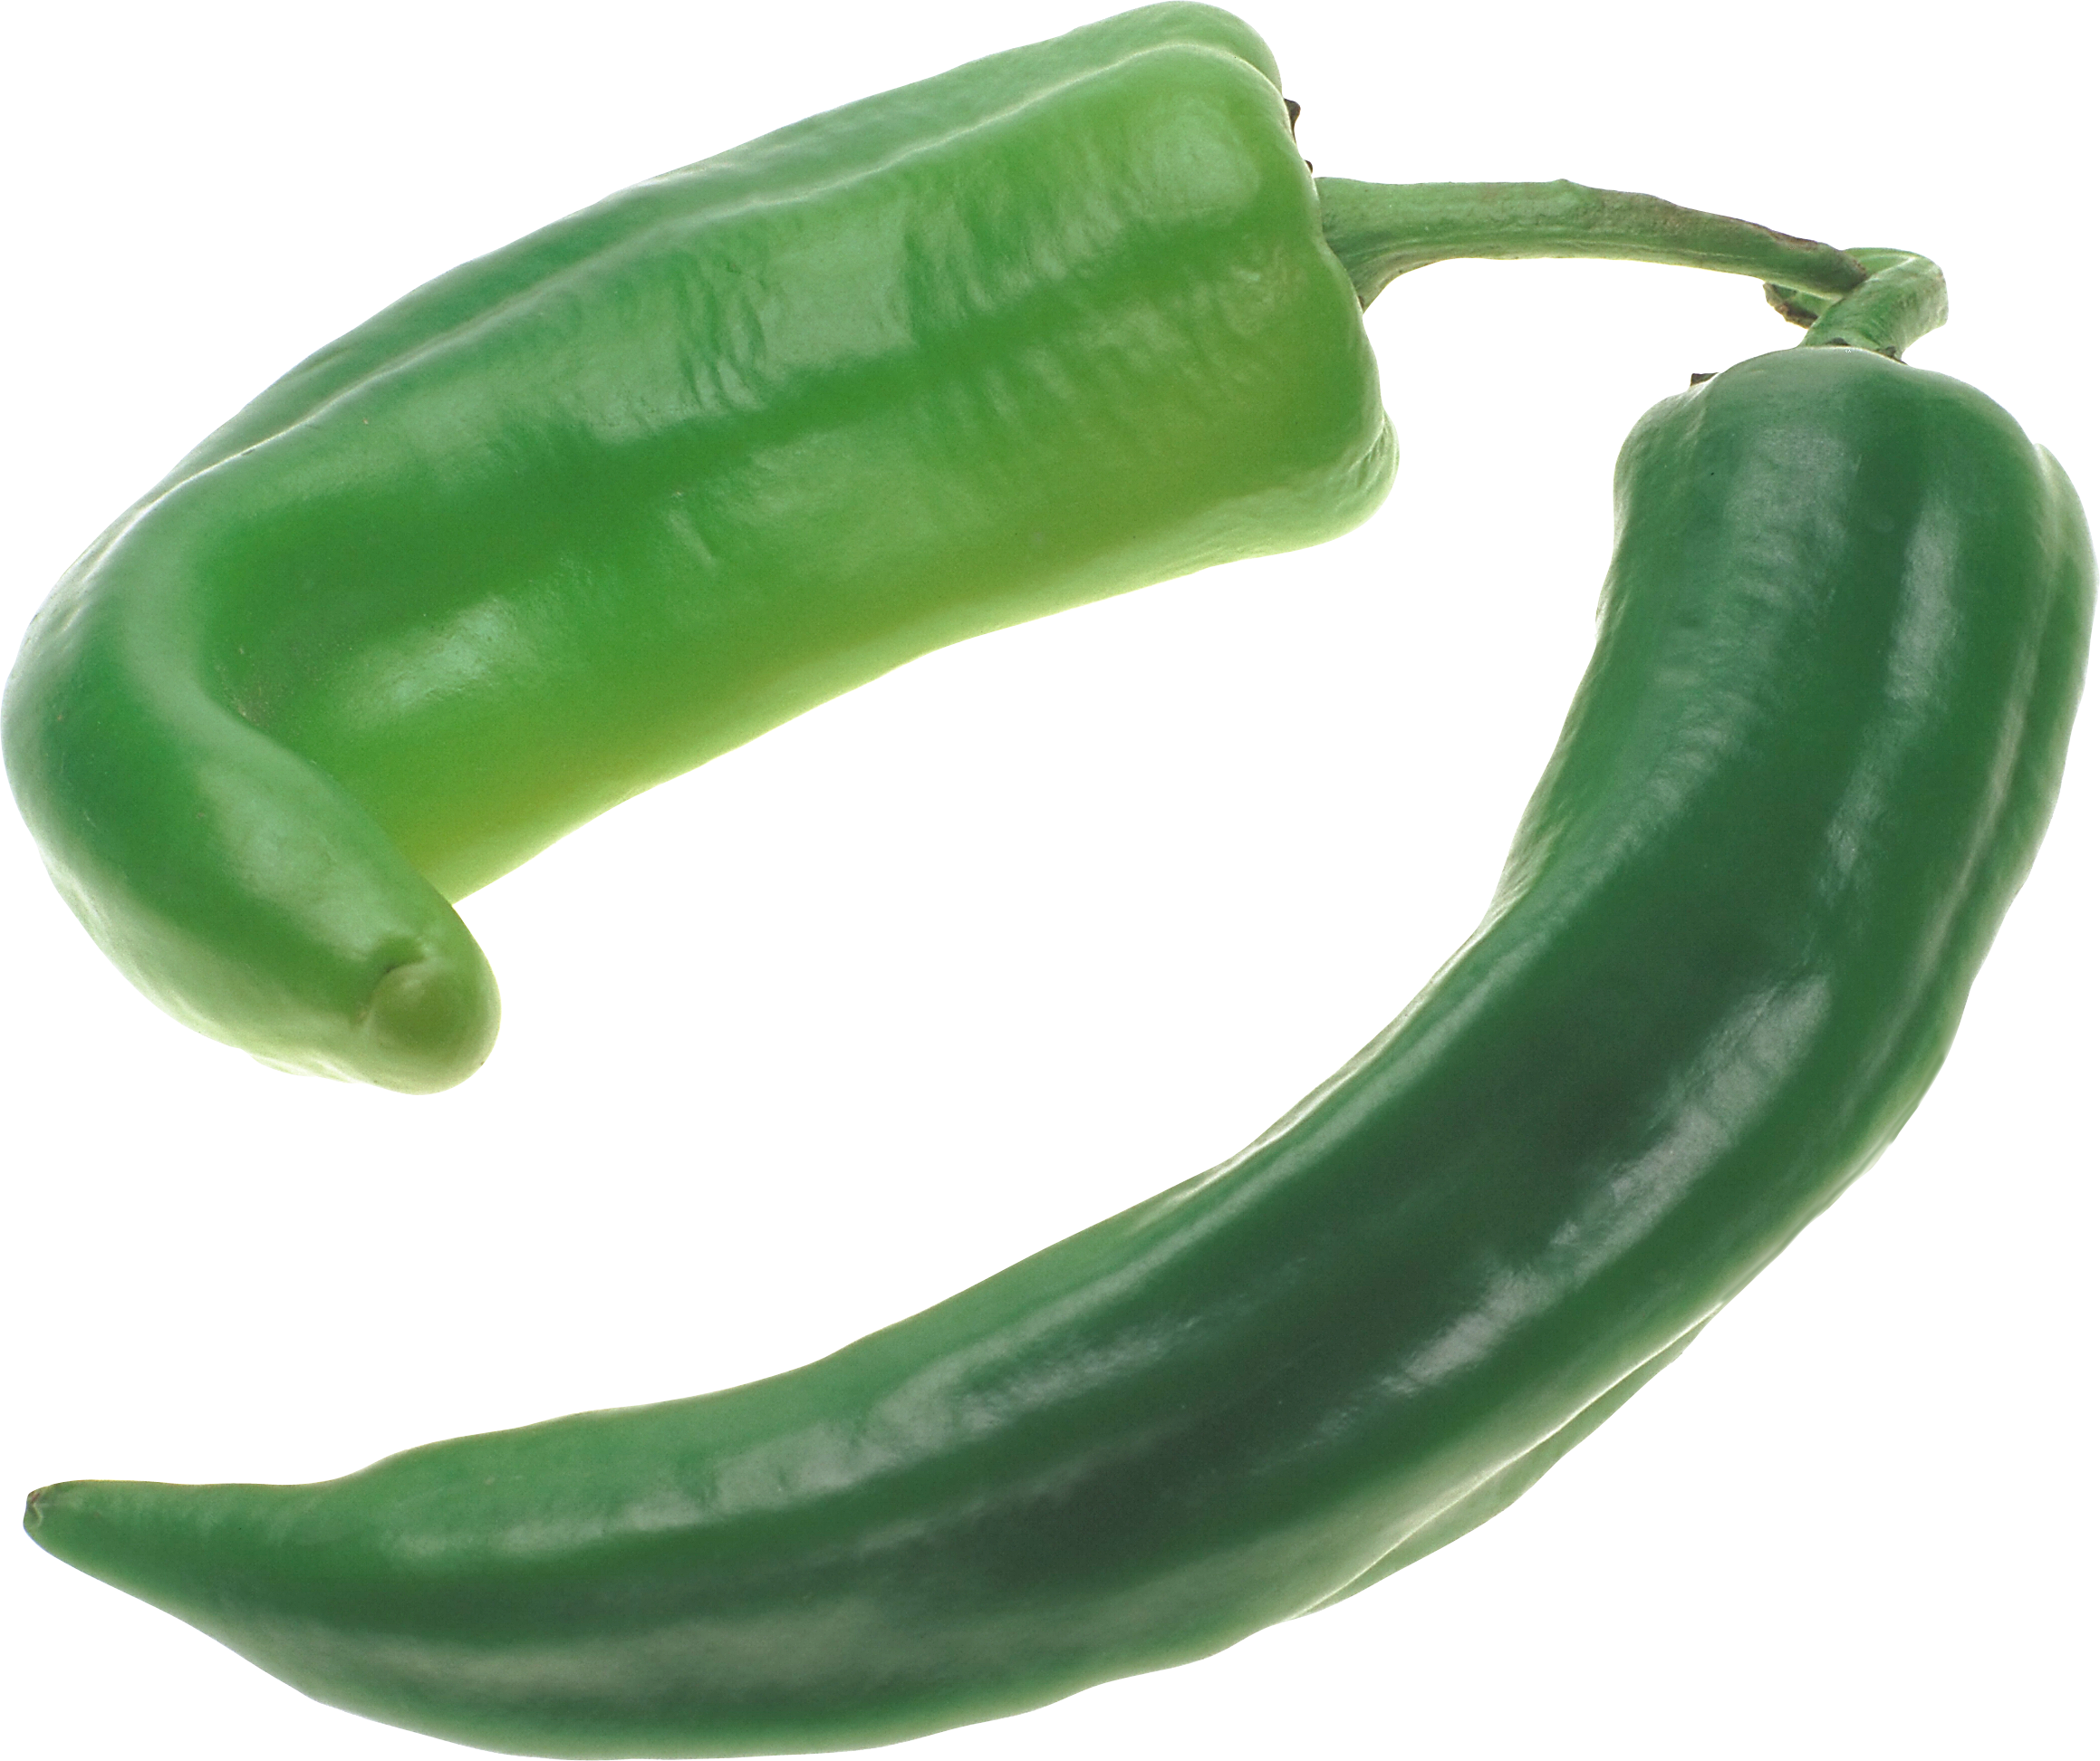 Hot chili pepper four. Jalapeno clipart mirchi